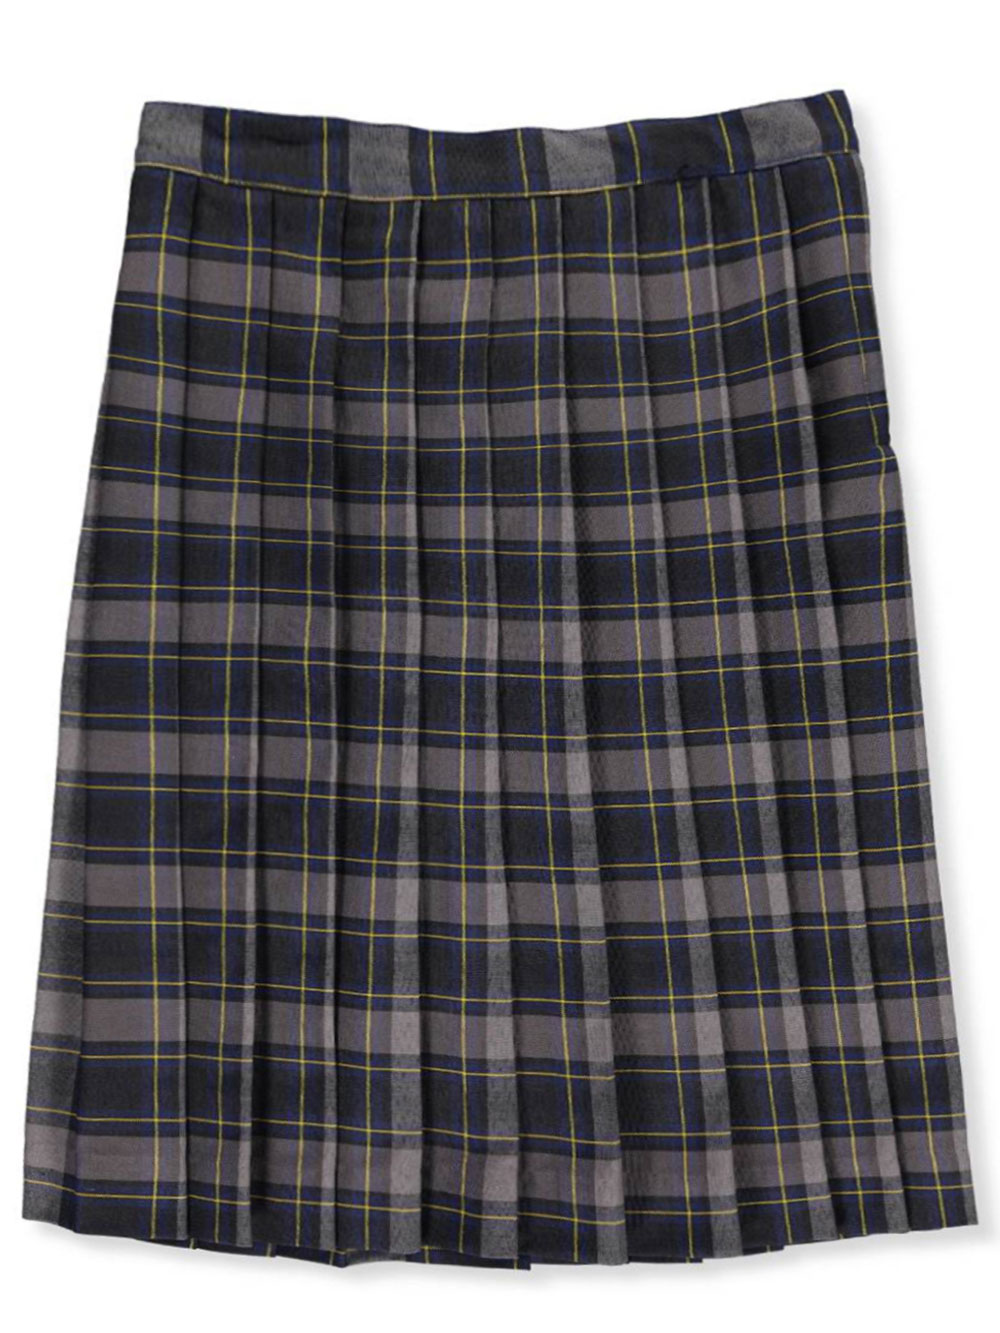 Plaid #87 Skirts